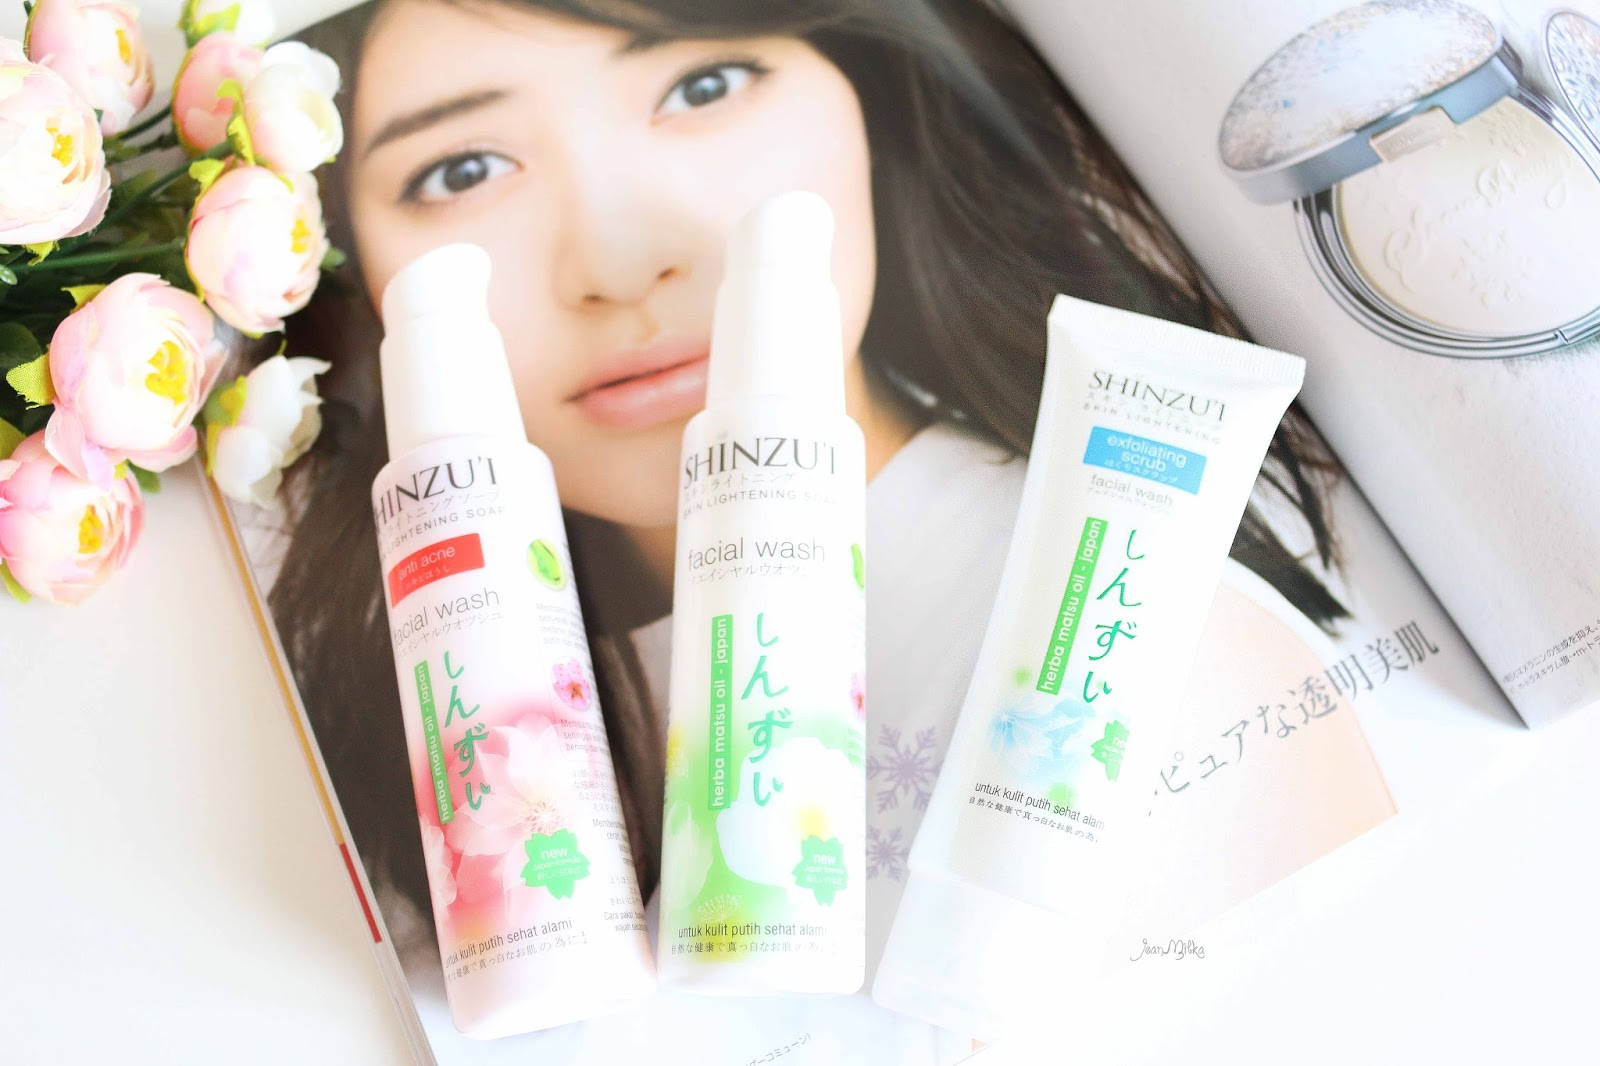 shinzui, putih itu shinzui, skin care, review shinzui, shinzui lightening series, shinzui scrub, shinzui facial wash